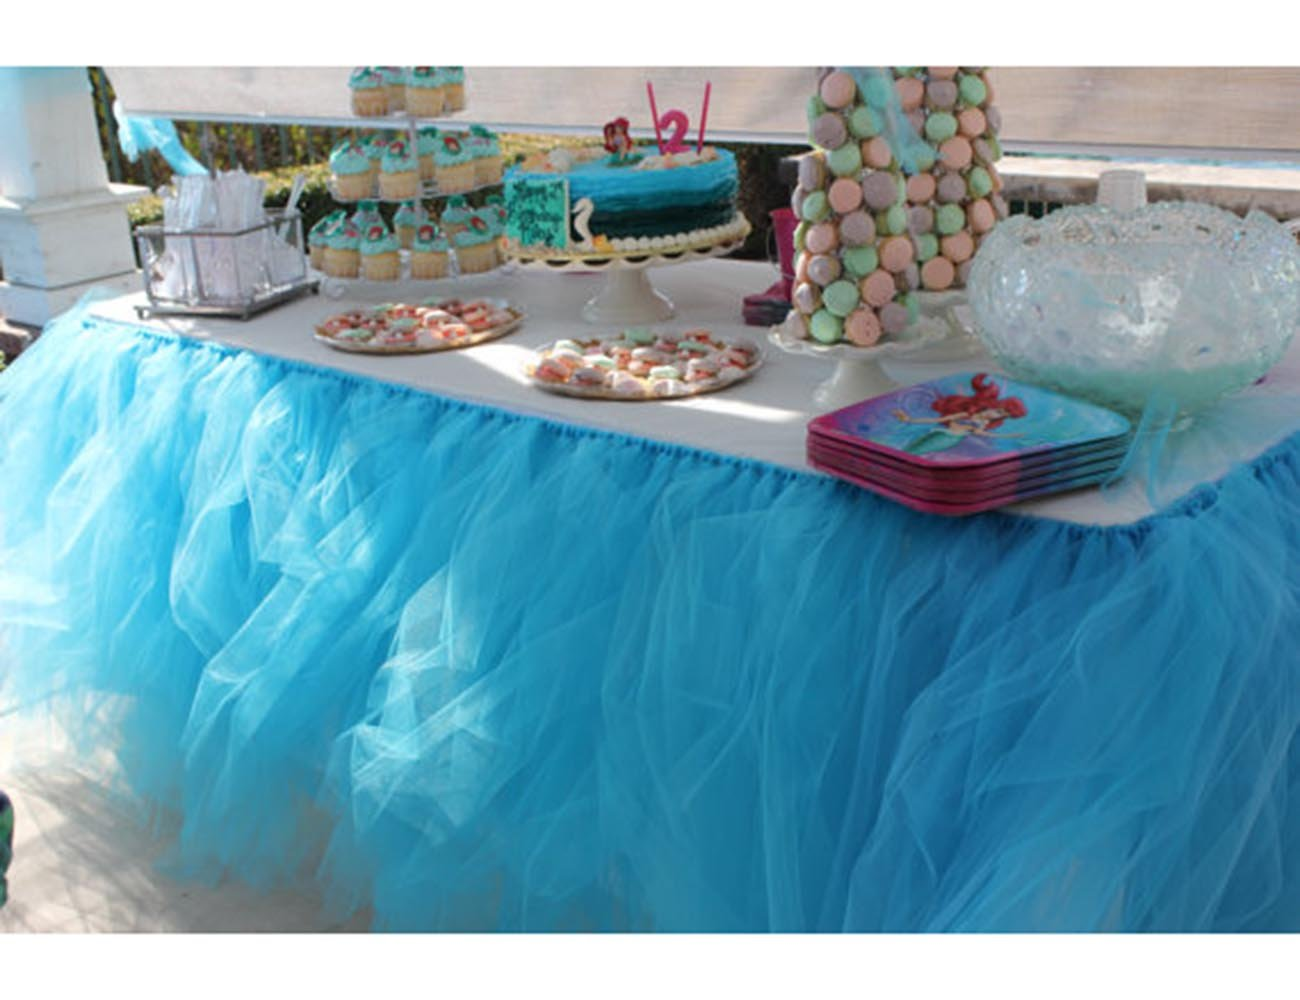 Tulle Tutu Table Chair Skirt for Wedding Birthday Party Baby shower Decoration (Blue, Table Skirt)